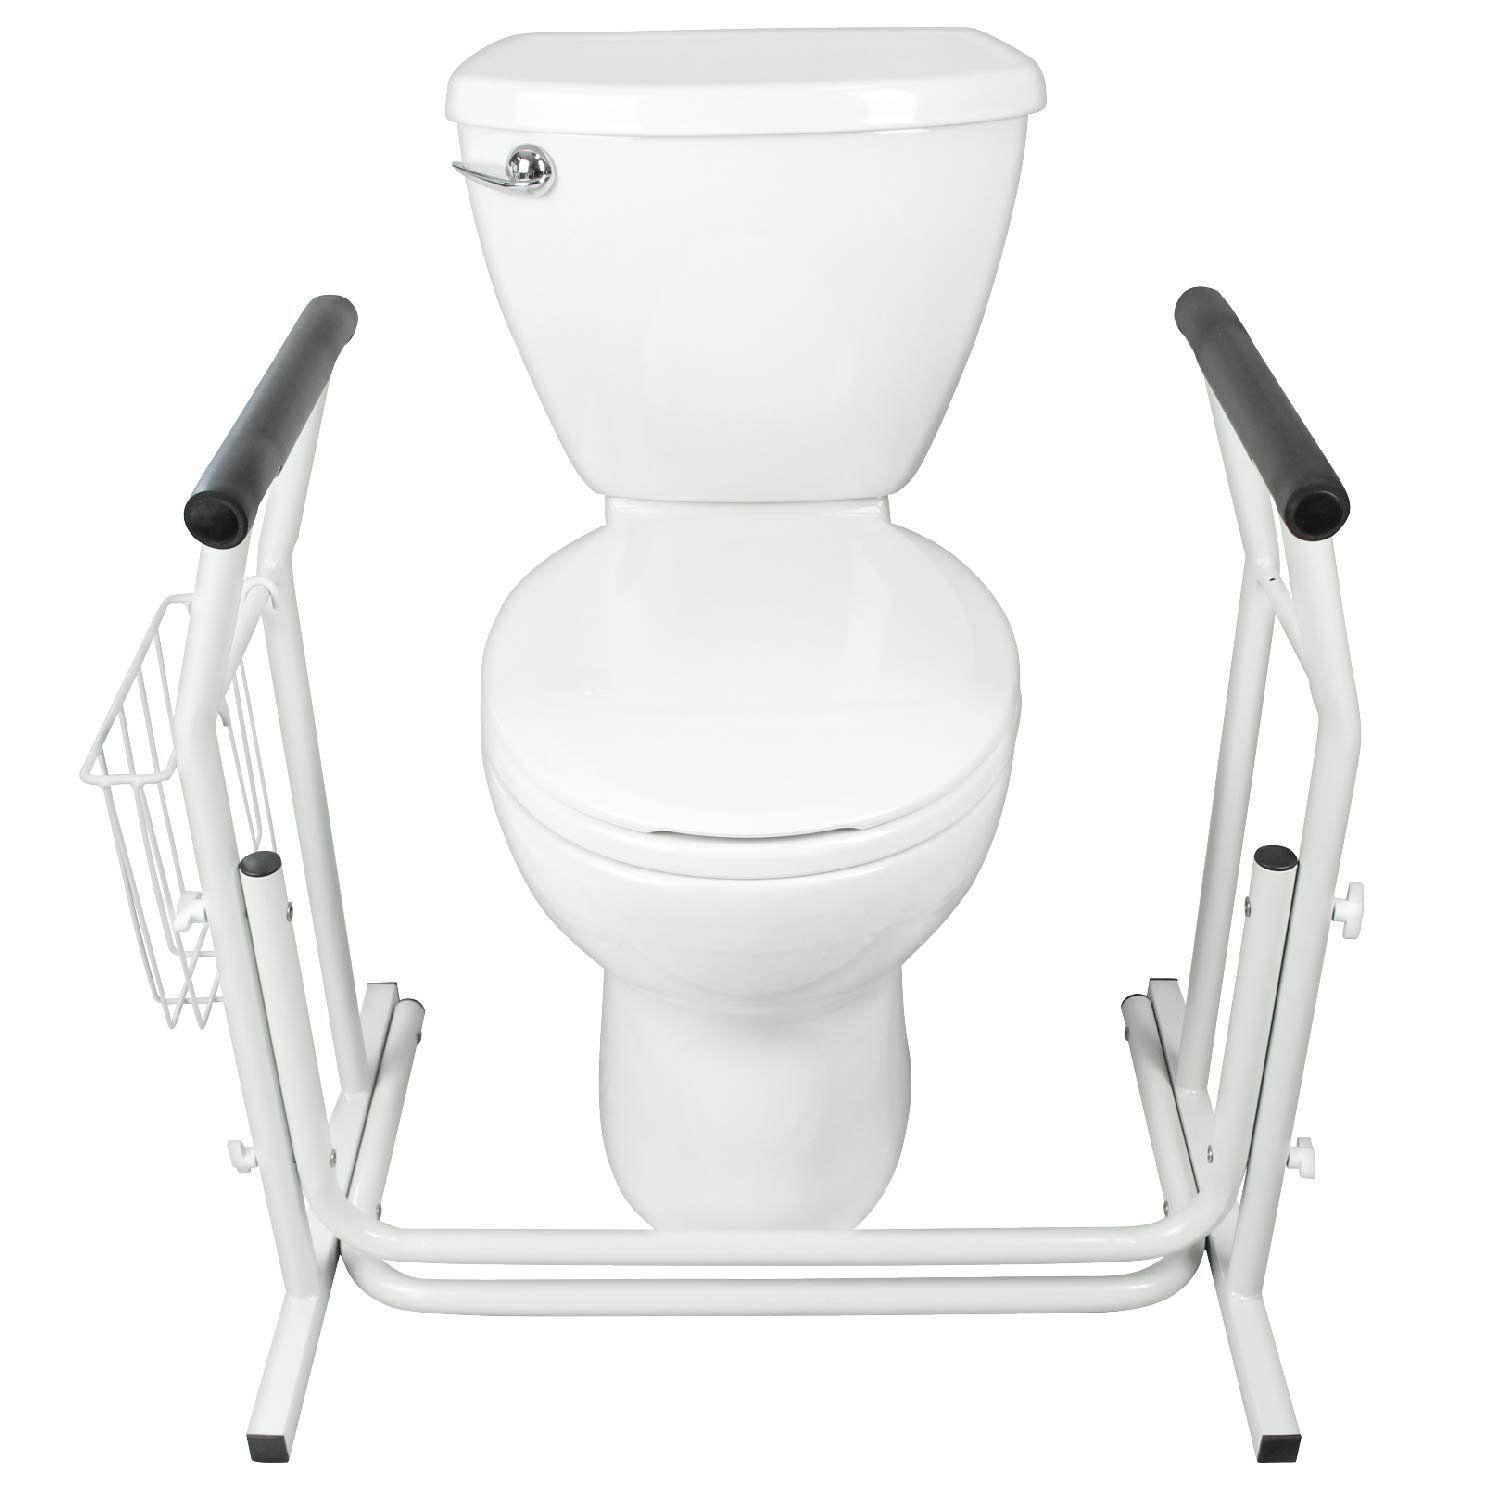 Stand Alone Toilet Rail by Vive - Medical Bathroom Safety Assist ...